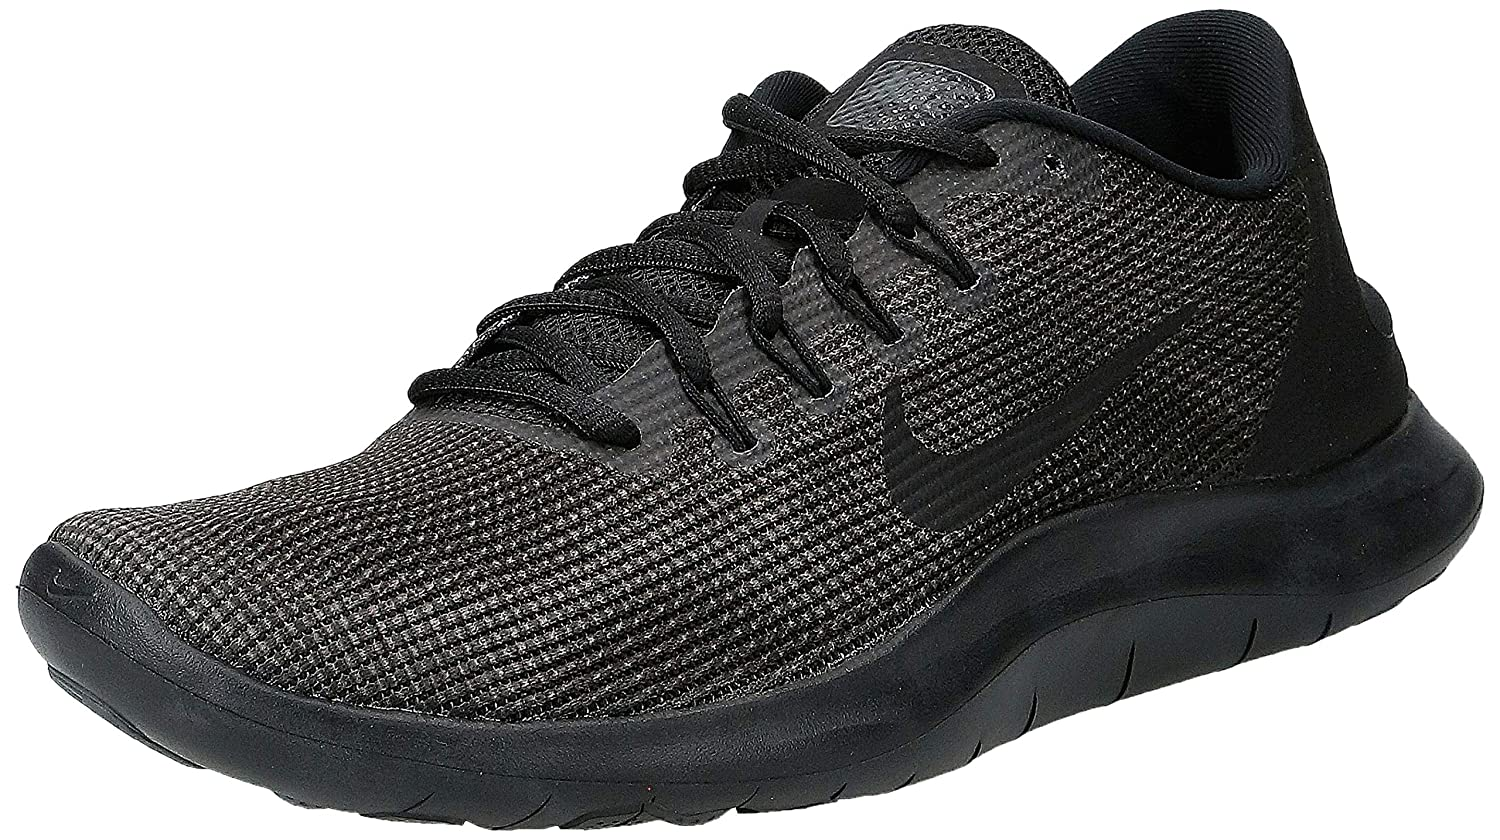 Nike Men s Flex RN 2018 Running Shoe Black Dark Grey Anthracite Size 10 M US